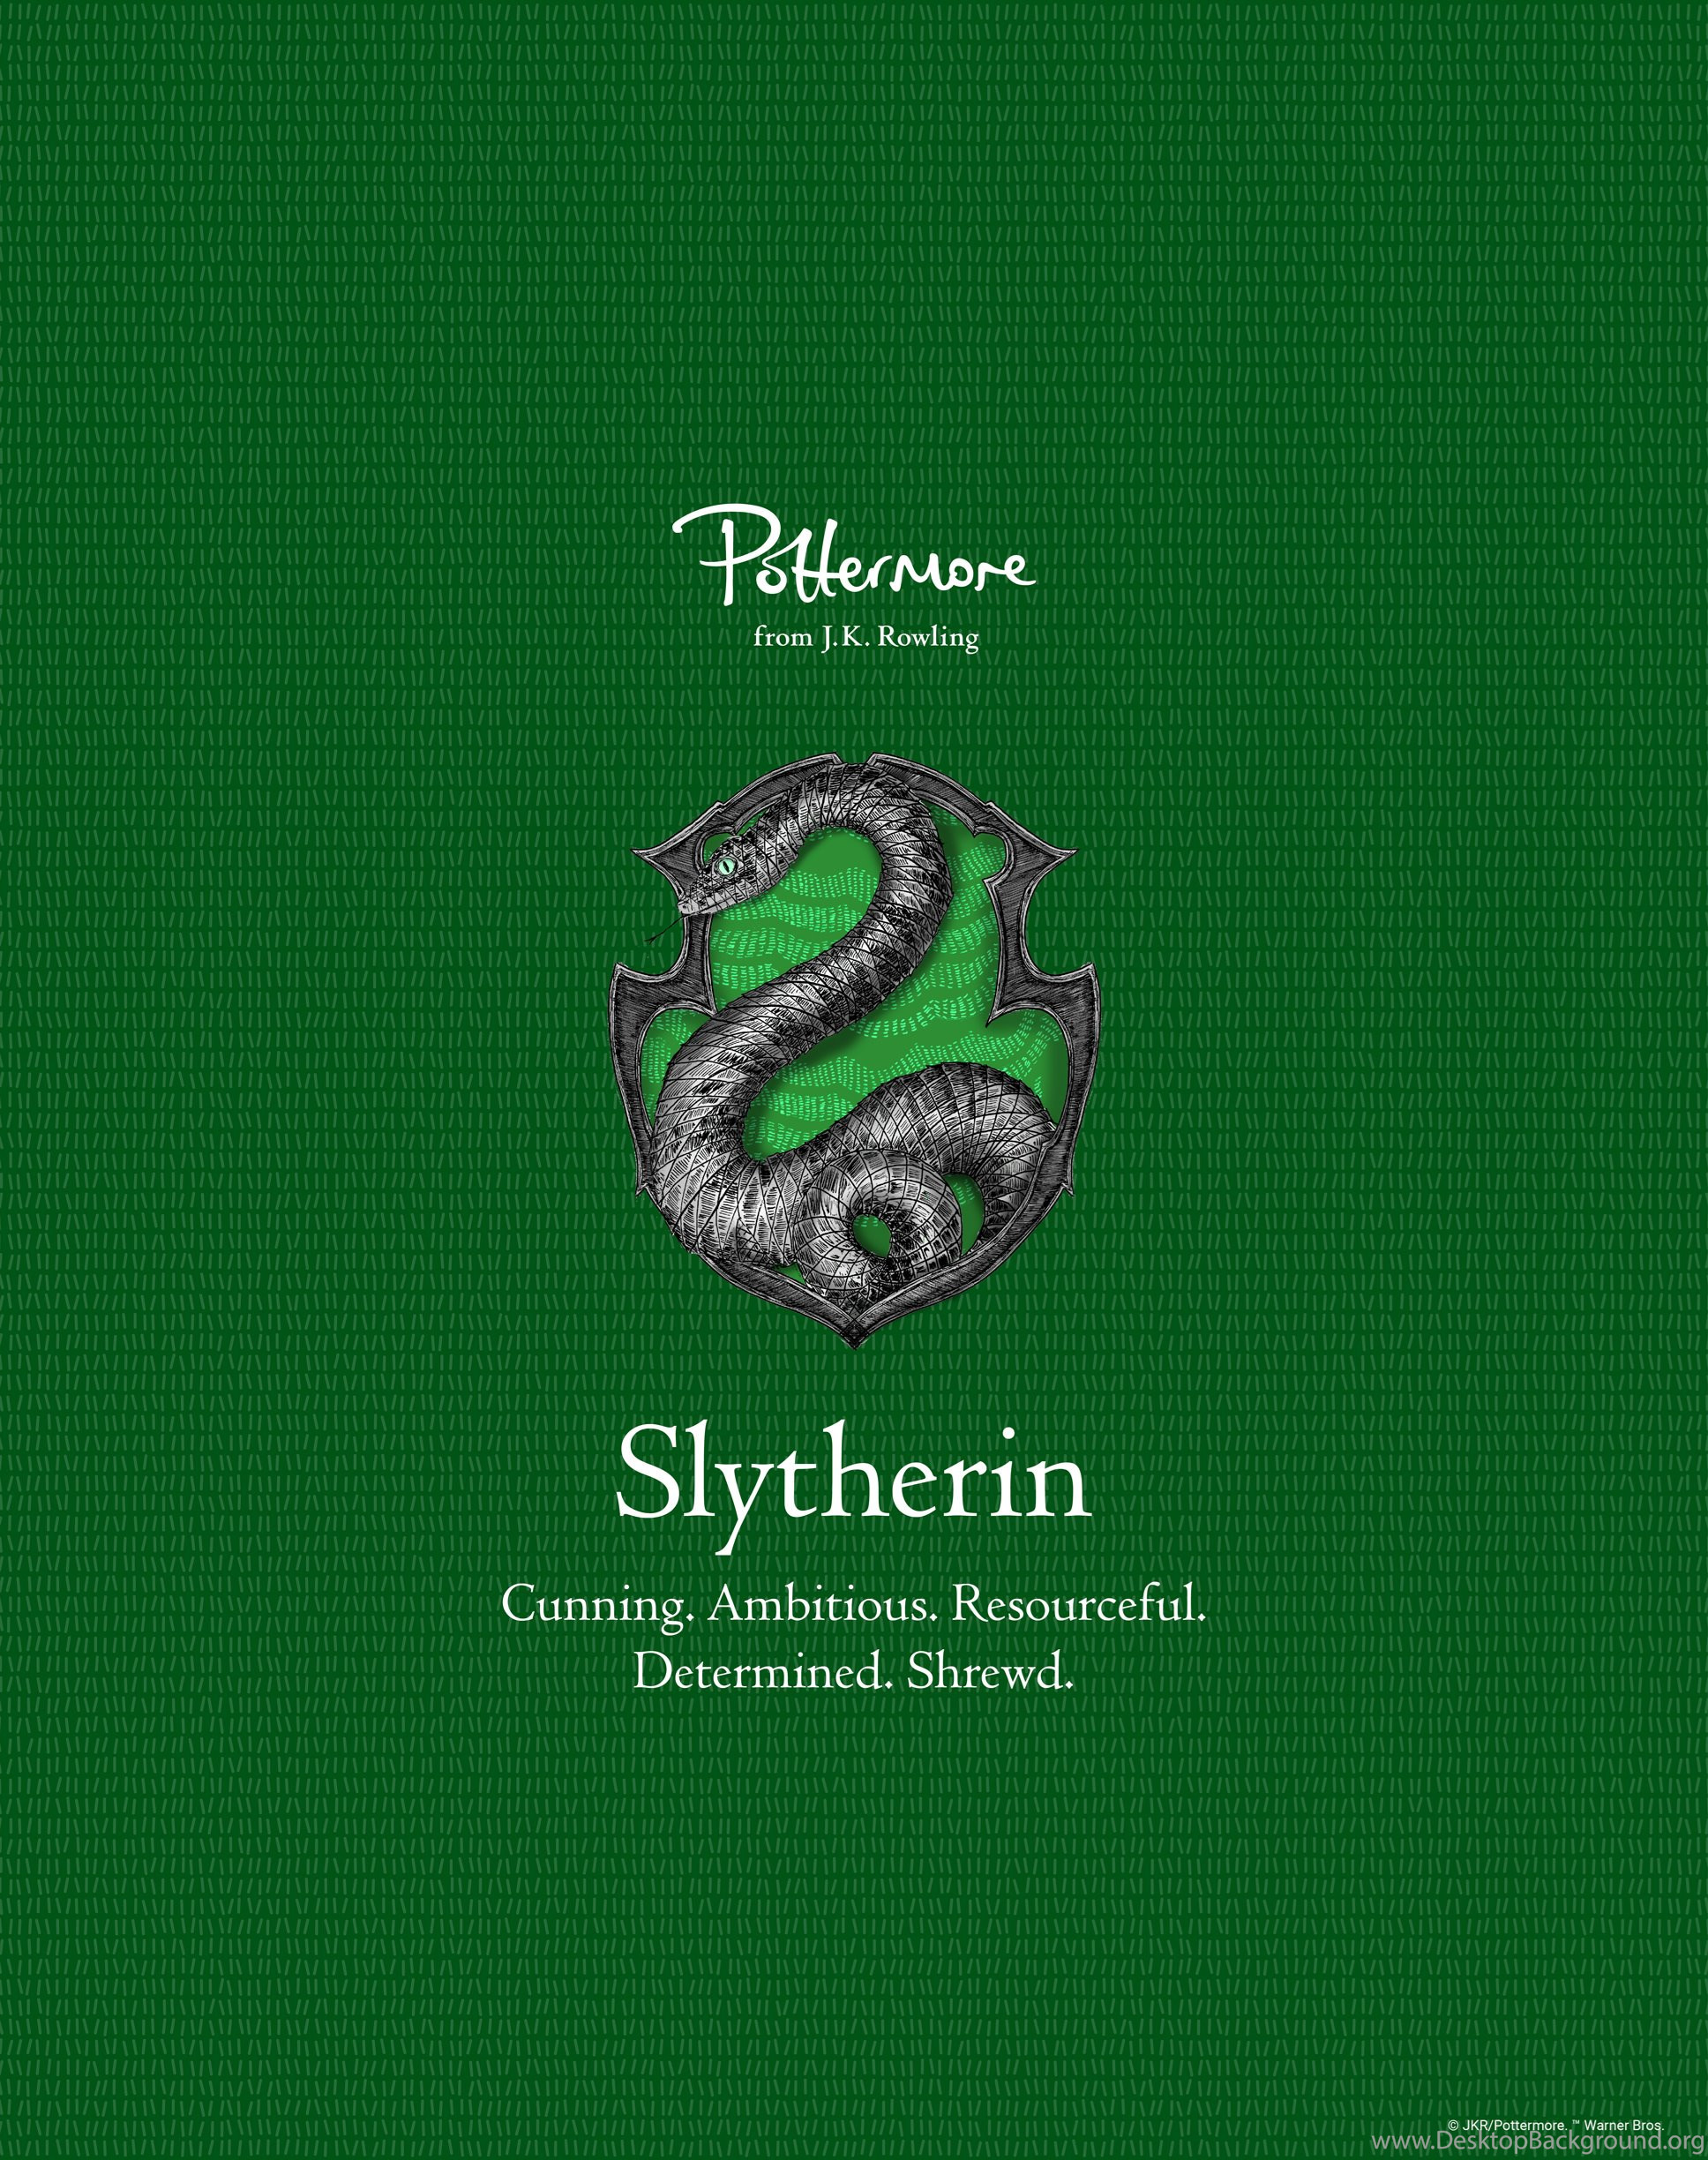 Harry Potter Slytherin Backgrounds Slytherin Wallpapers Tumblr 81 Background Pictures pavbca com